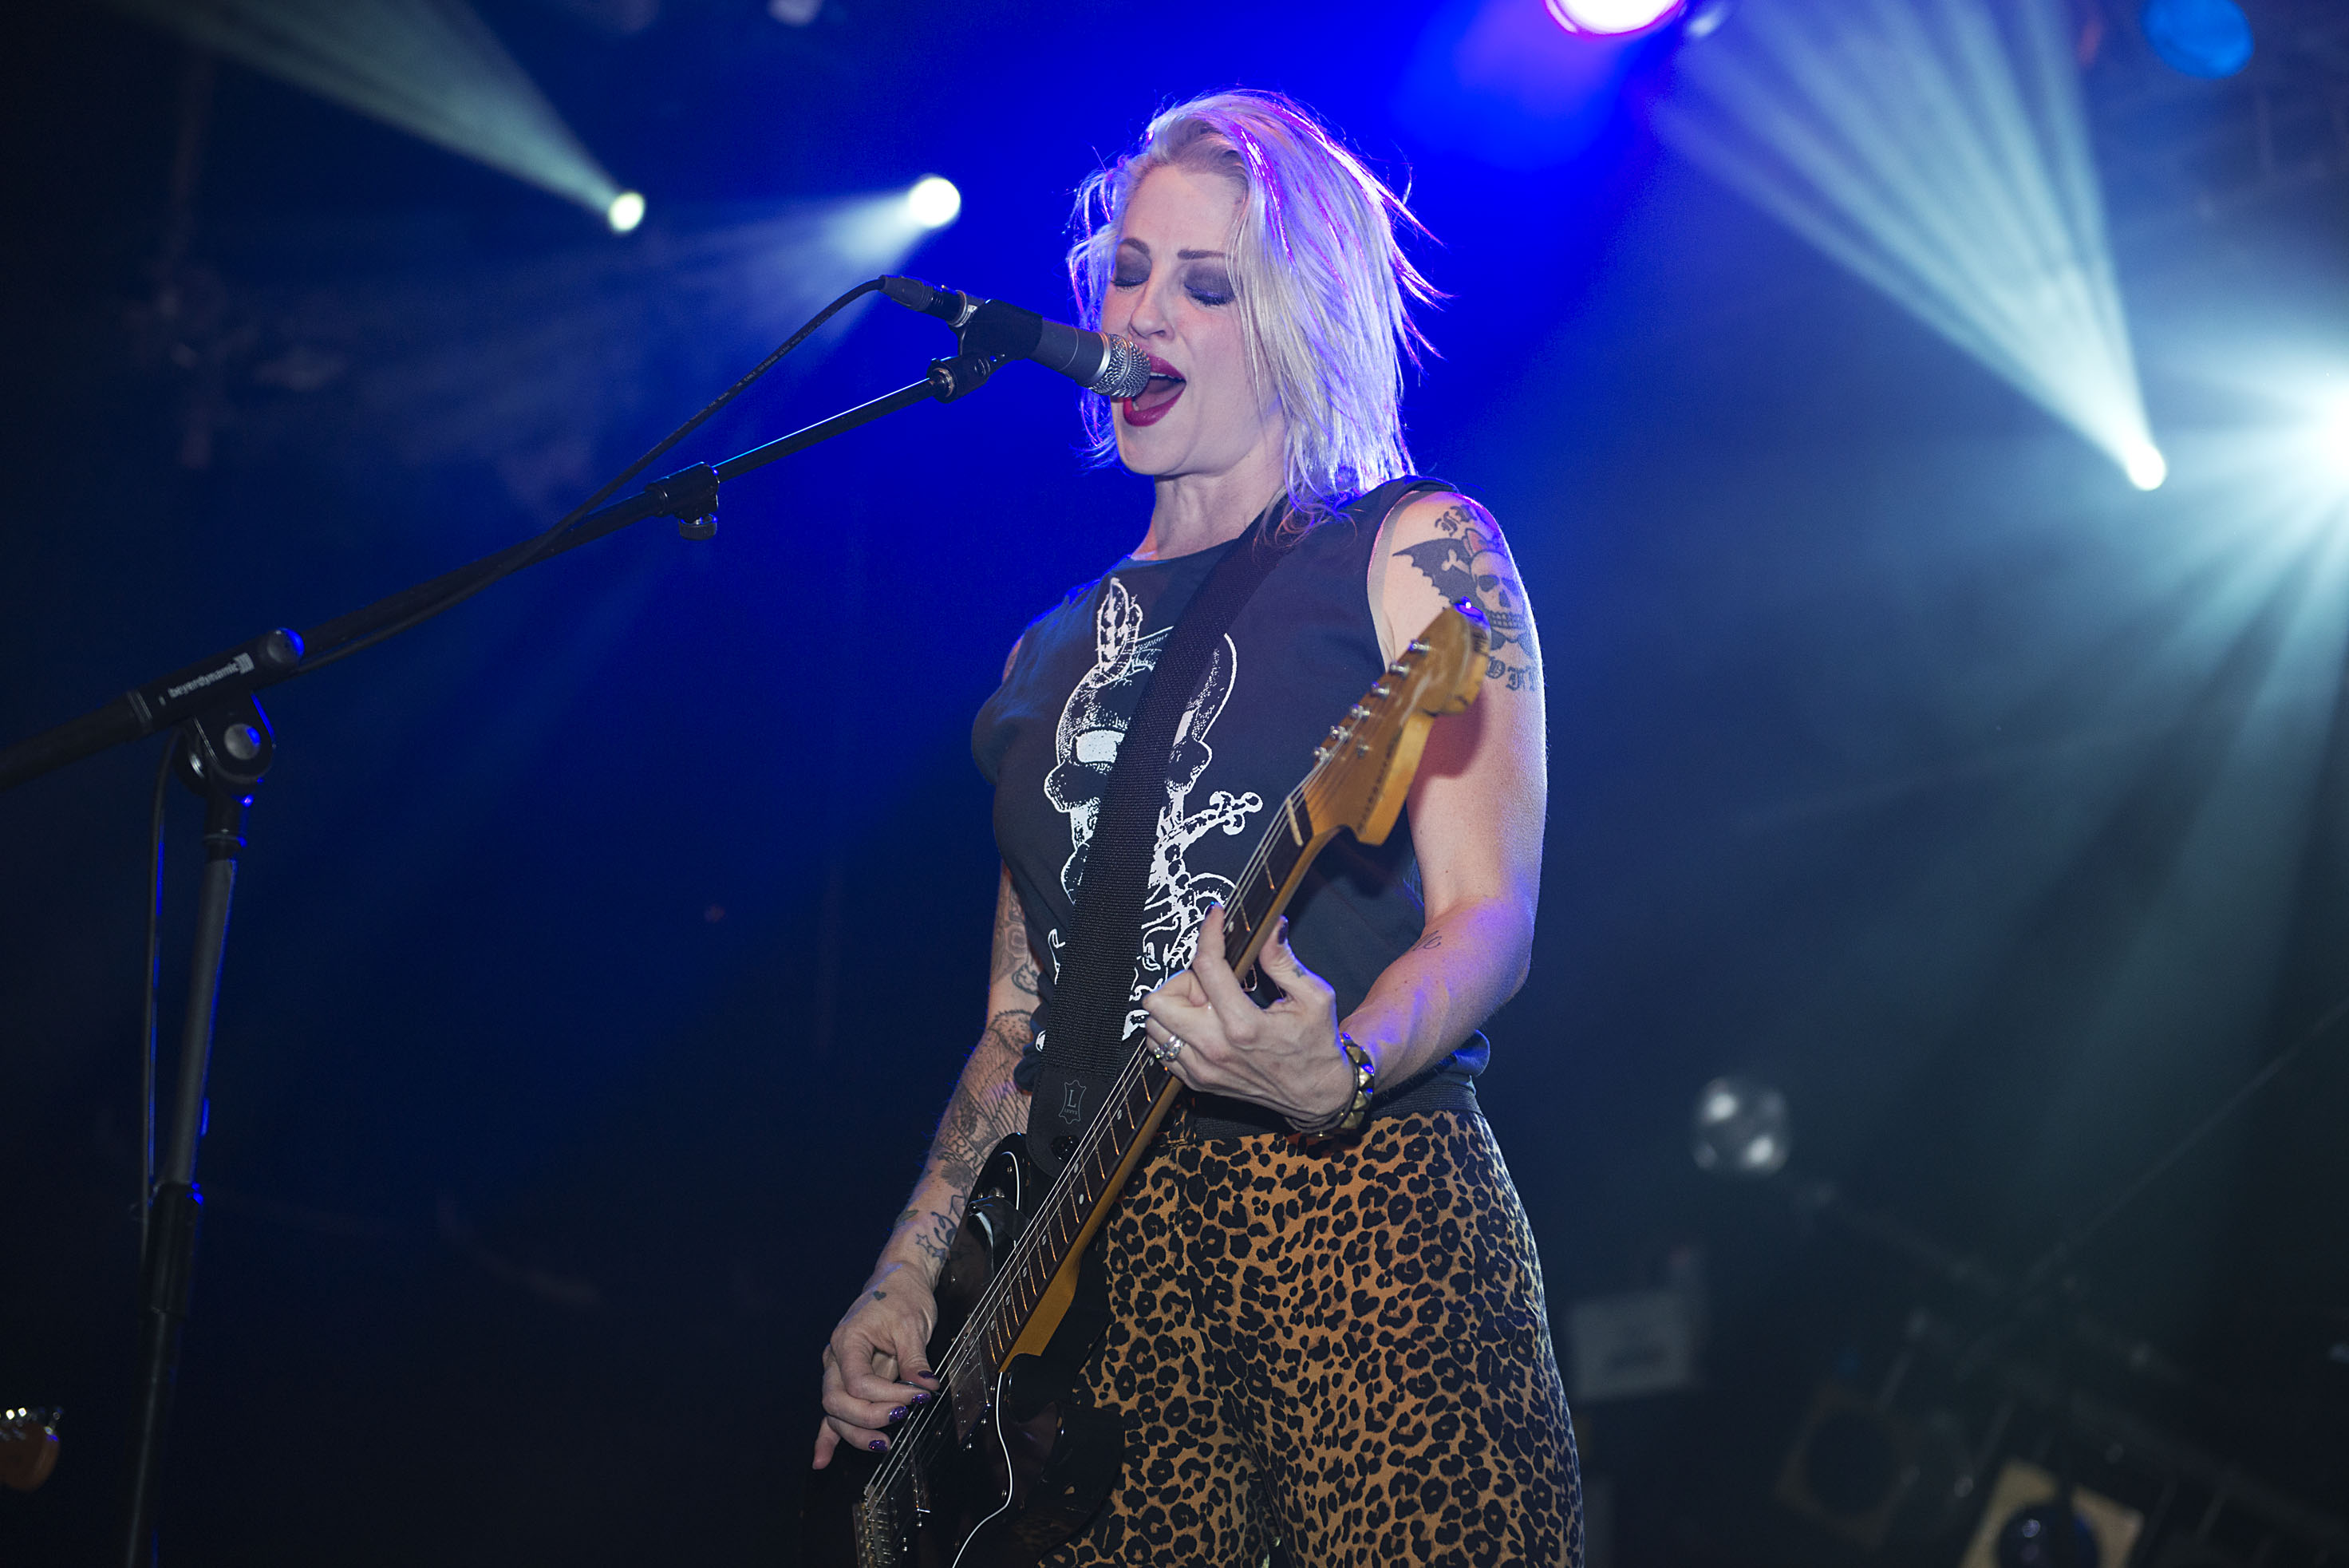 LIVE REVIEW: BRODY DALLE